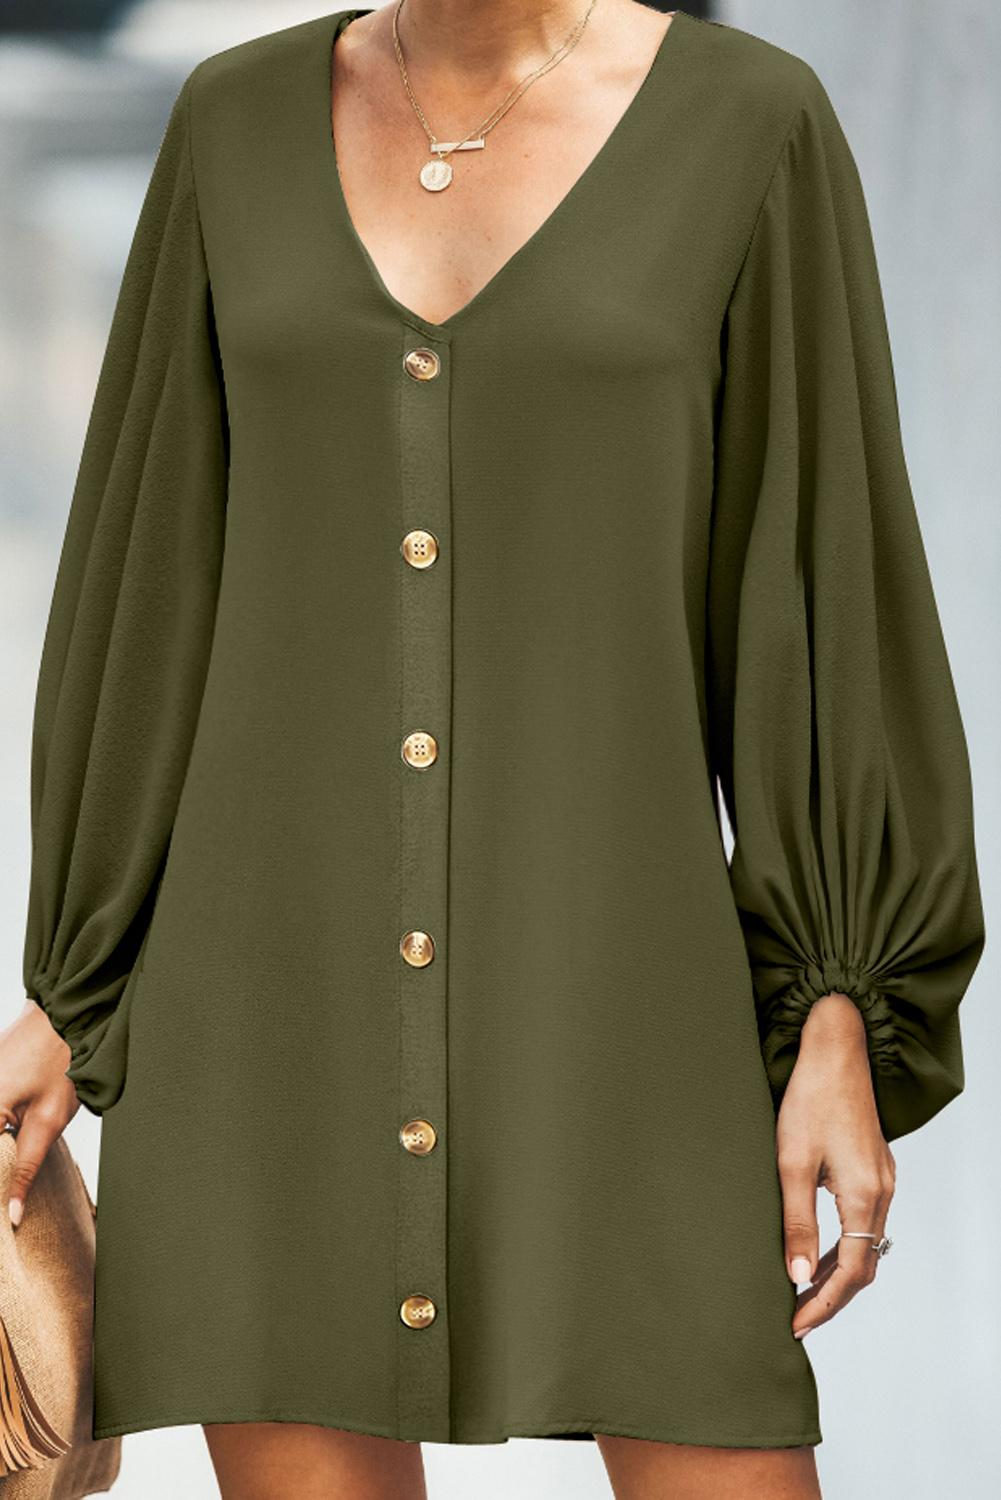 Green Buttoned-down V Neck Billowy Sleeve Shift Dress